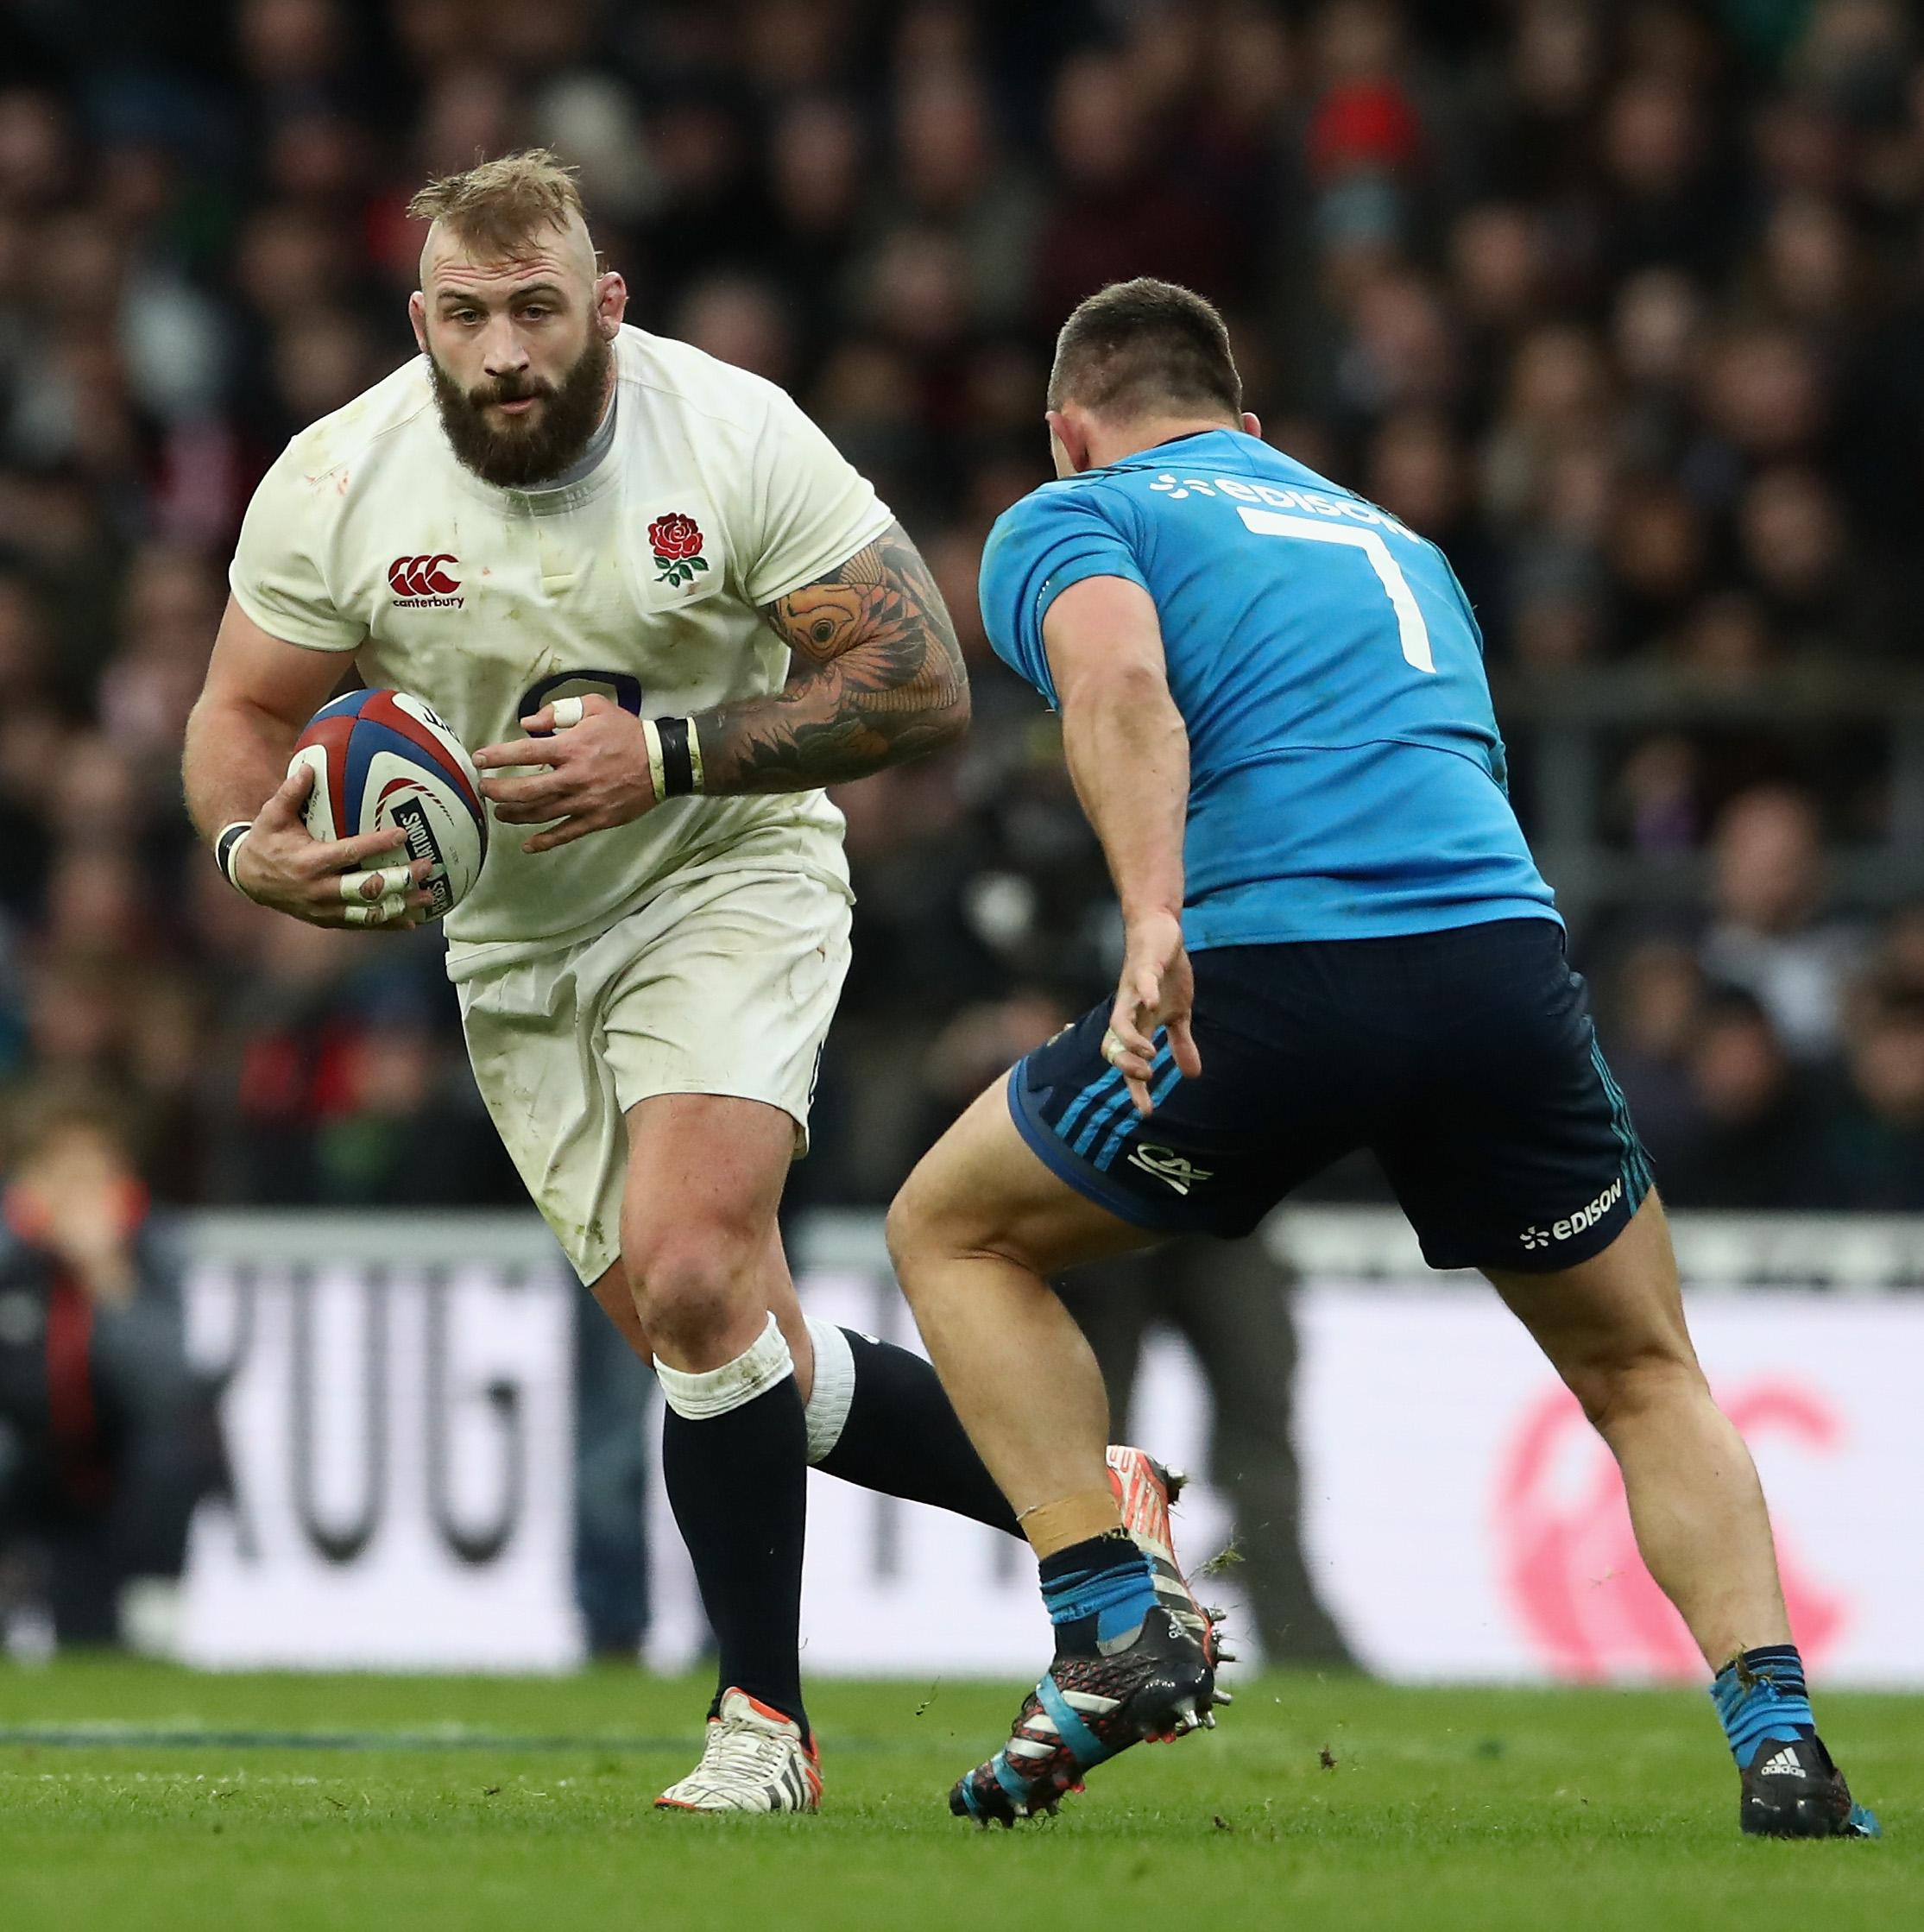 The loosehead prop wants to spend more time with his family